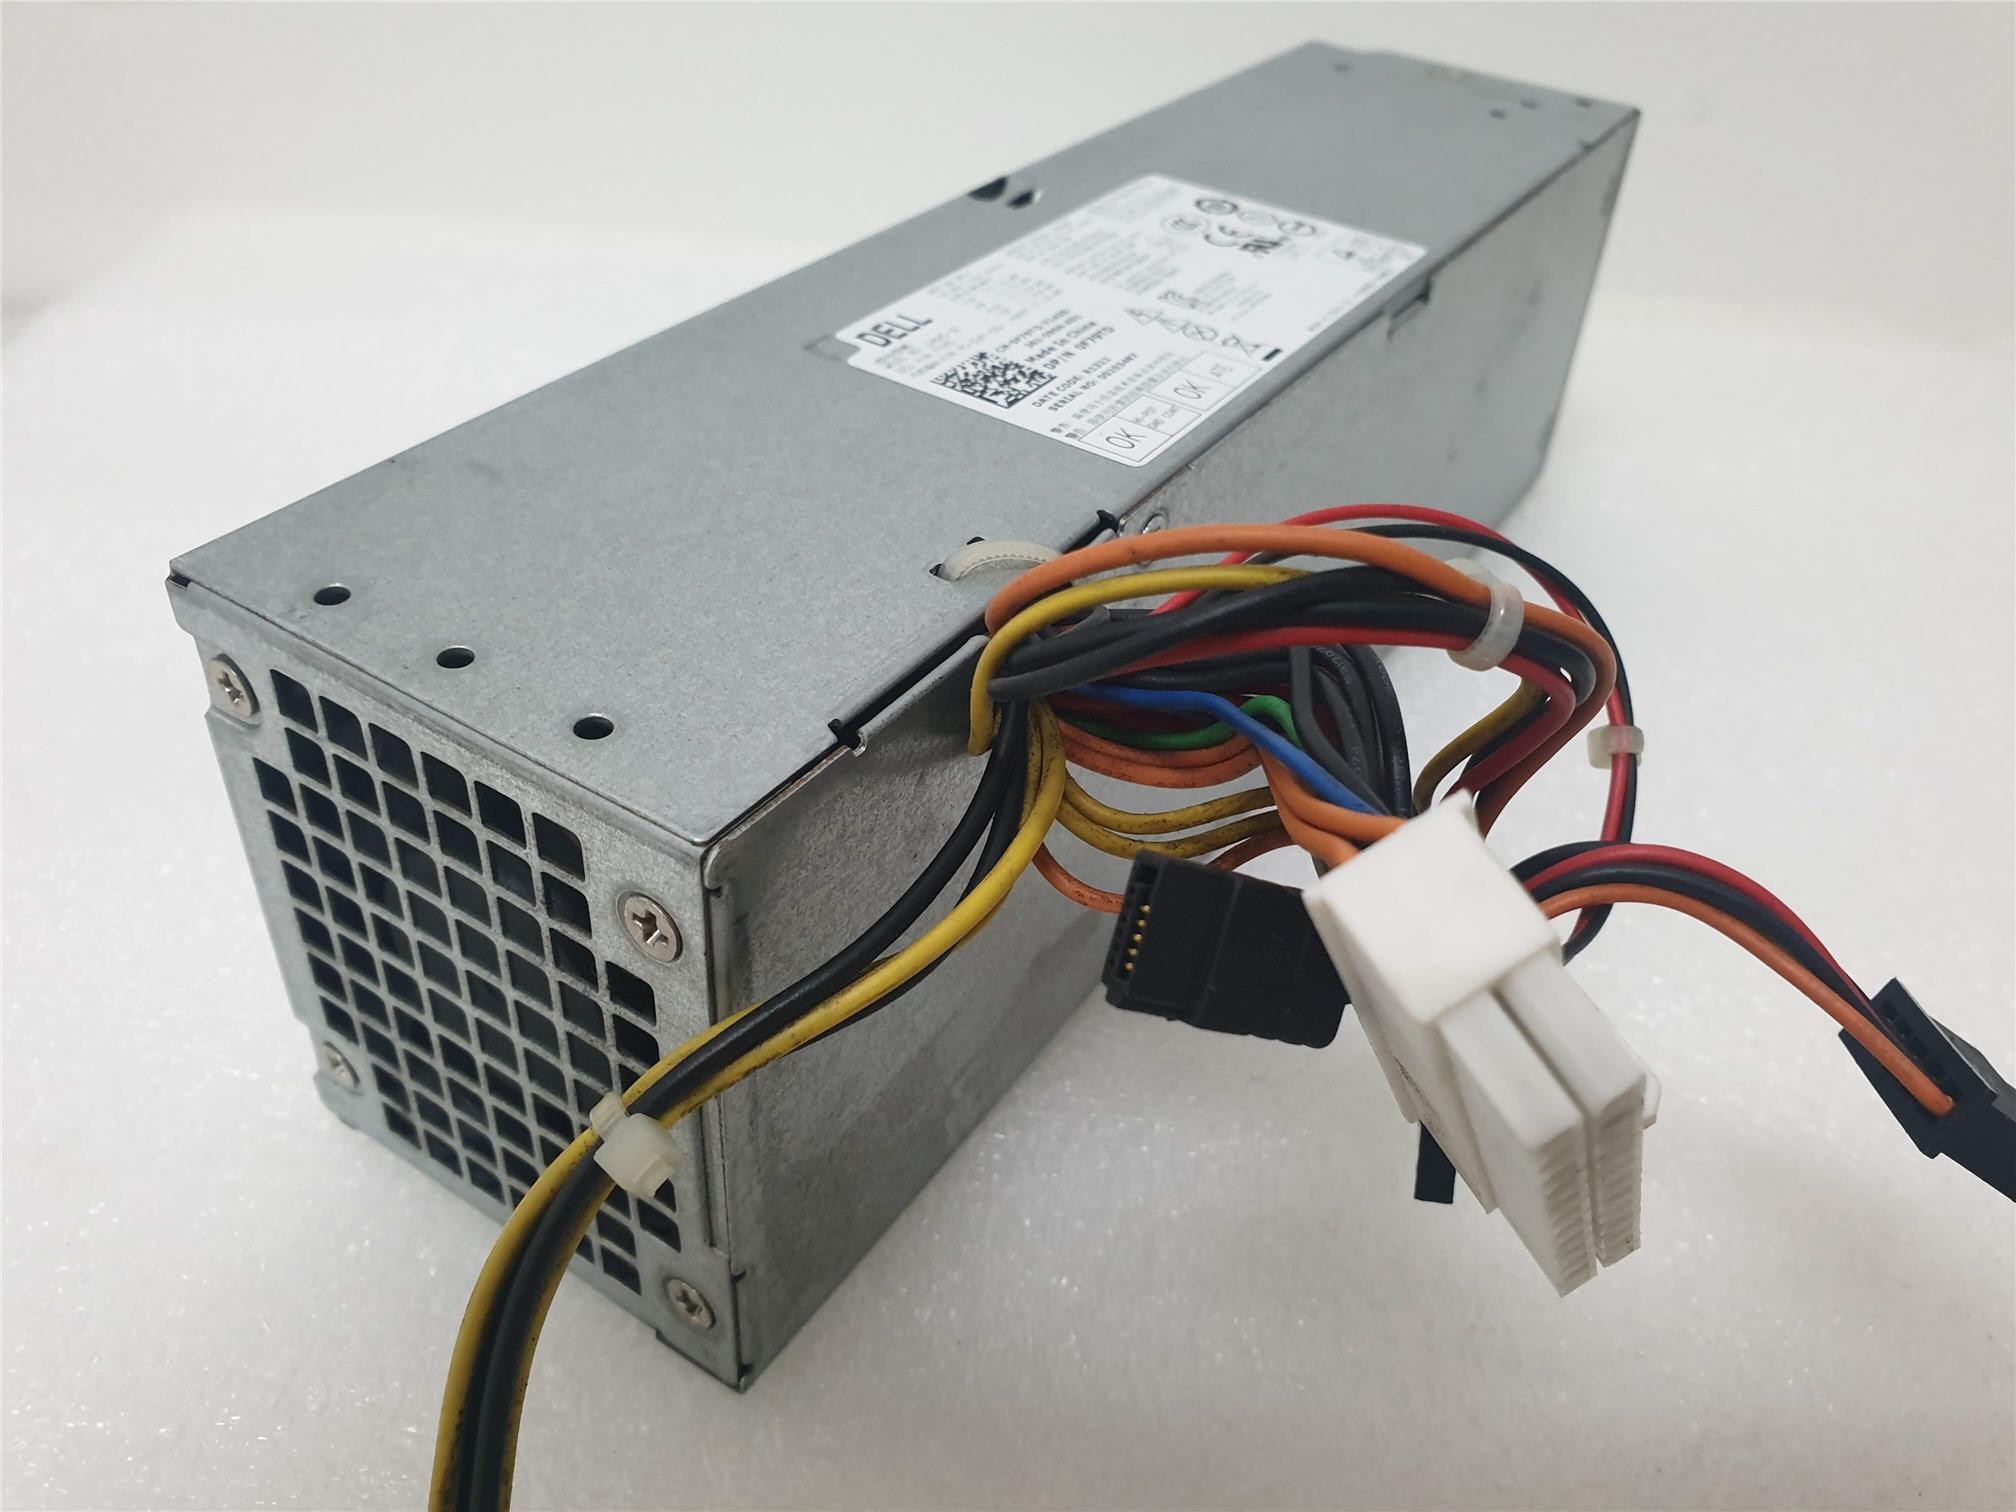 Dell Optiplex 390 SFF 240W Power Supply 592JG 709MT AC240AS-00 (REF)